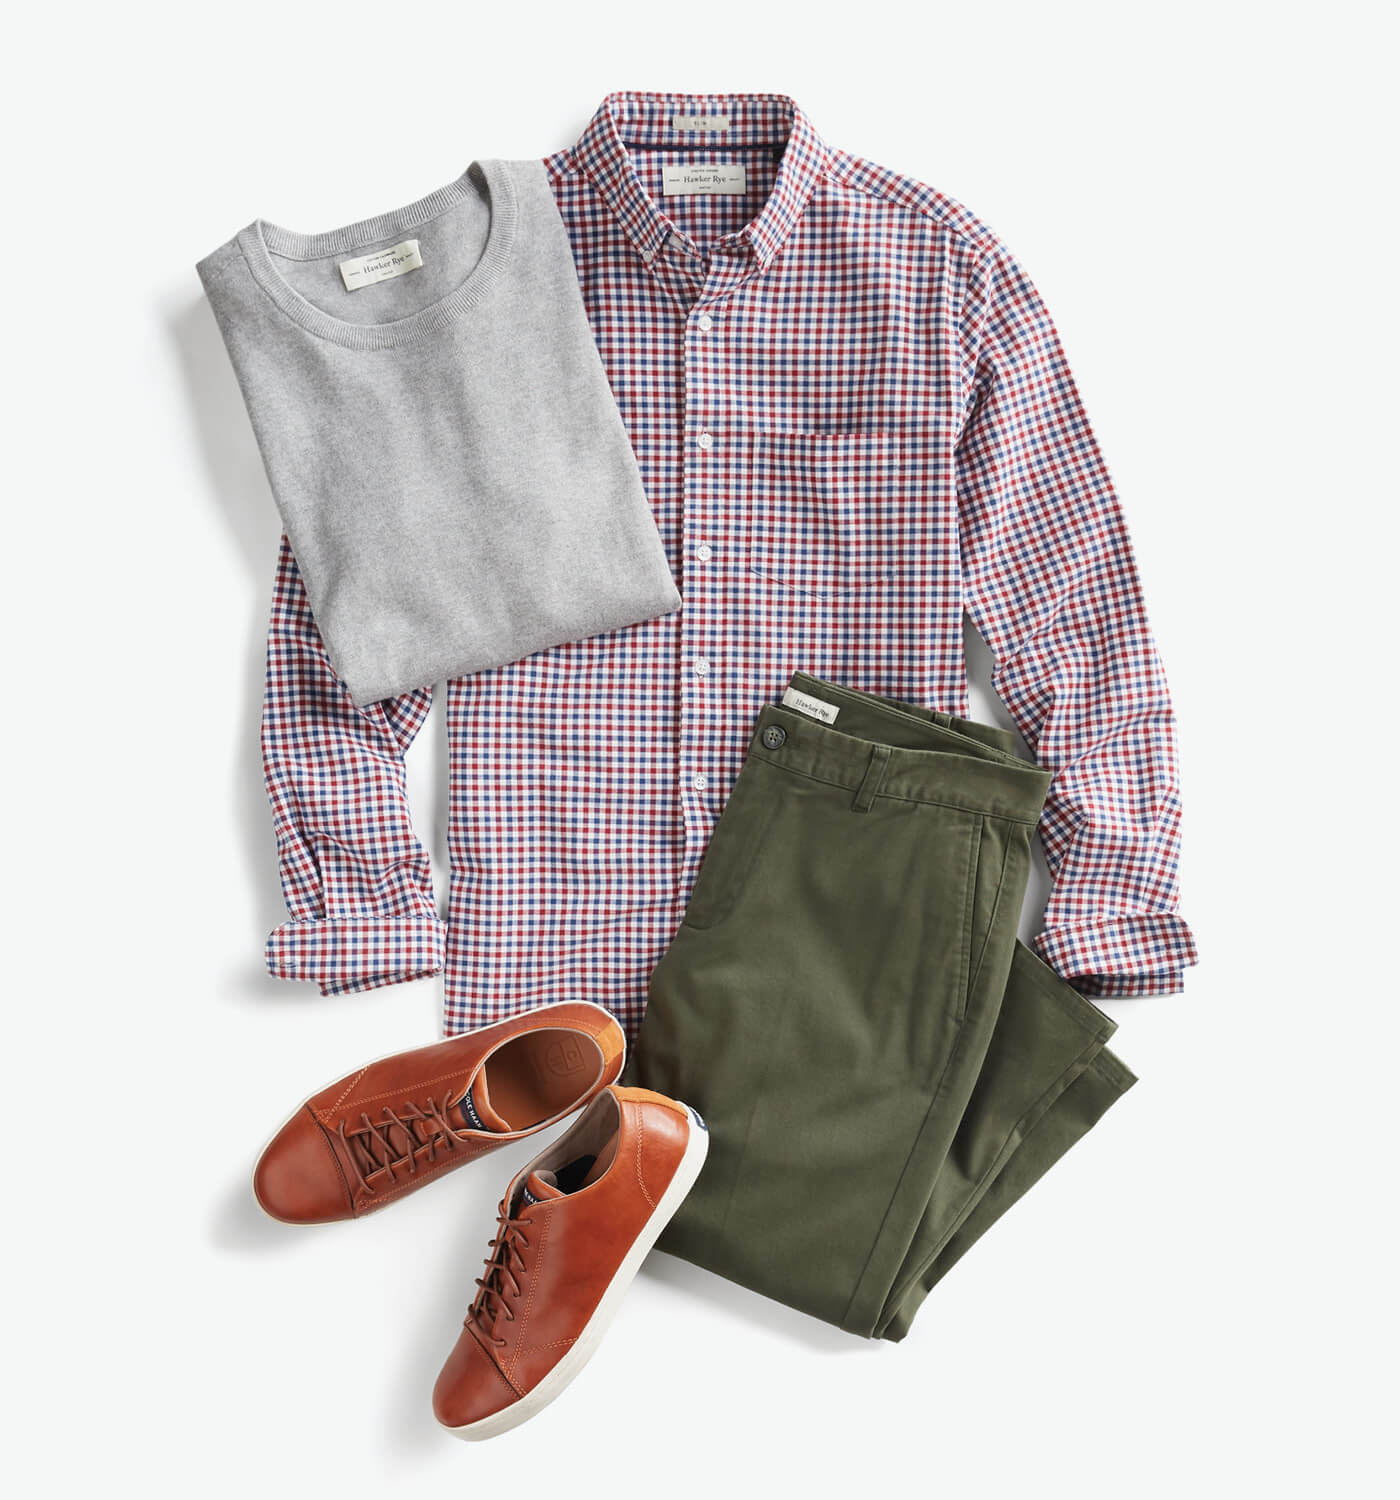 How do I look sharp on a casual first date? | Stitch Fix Men